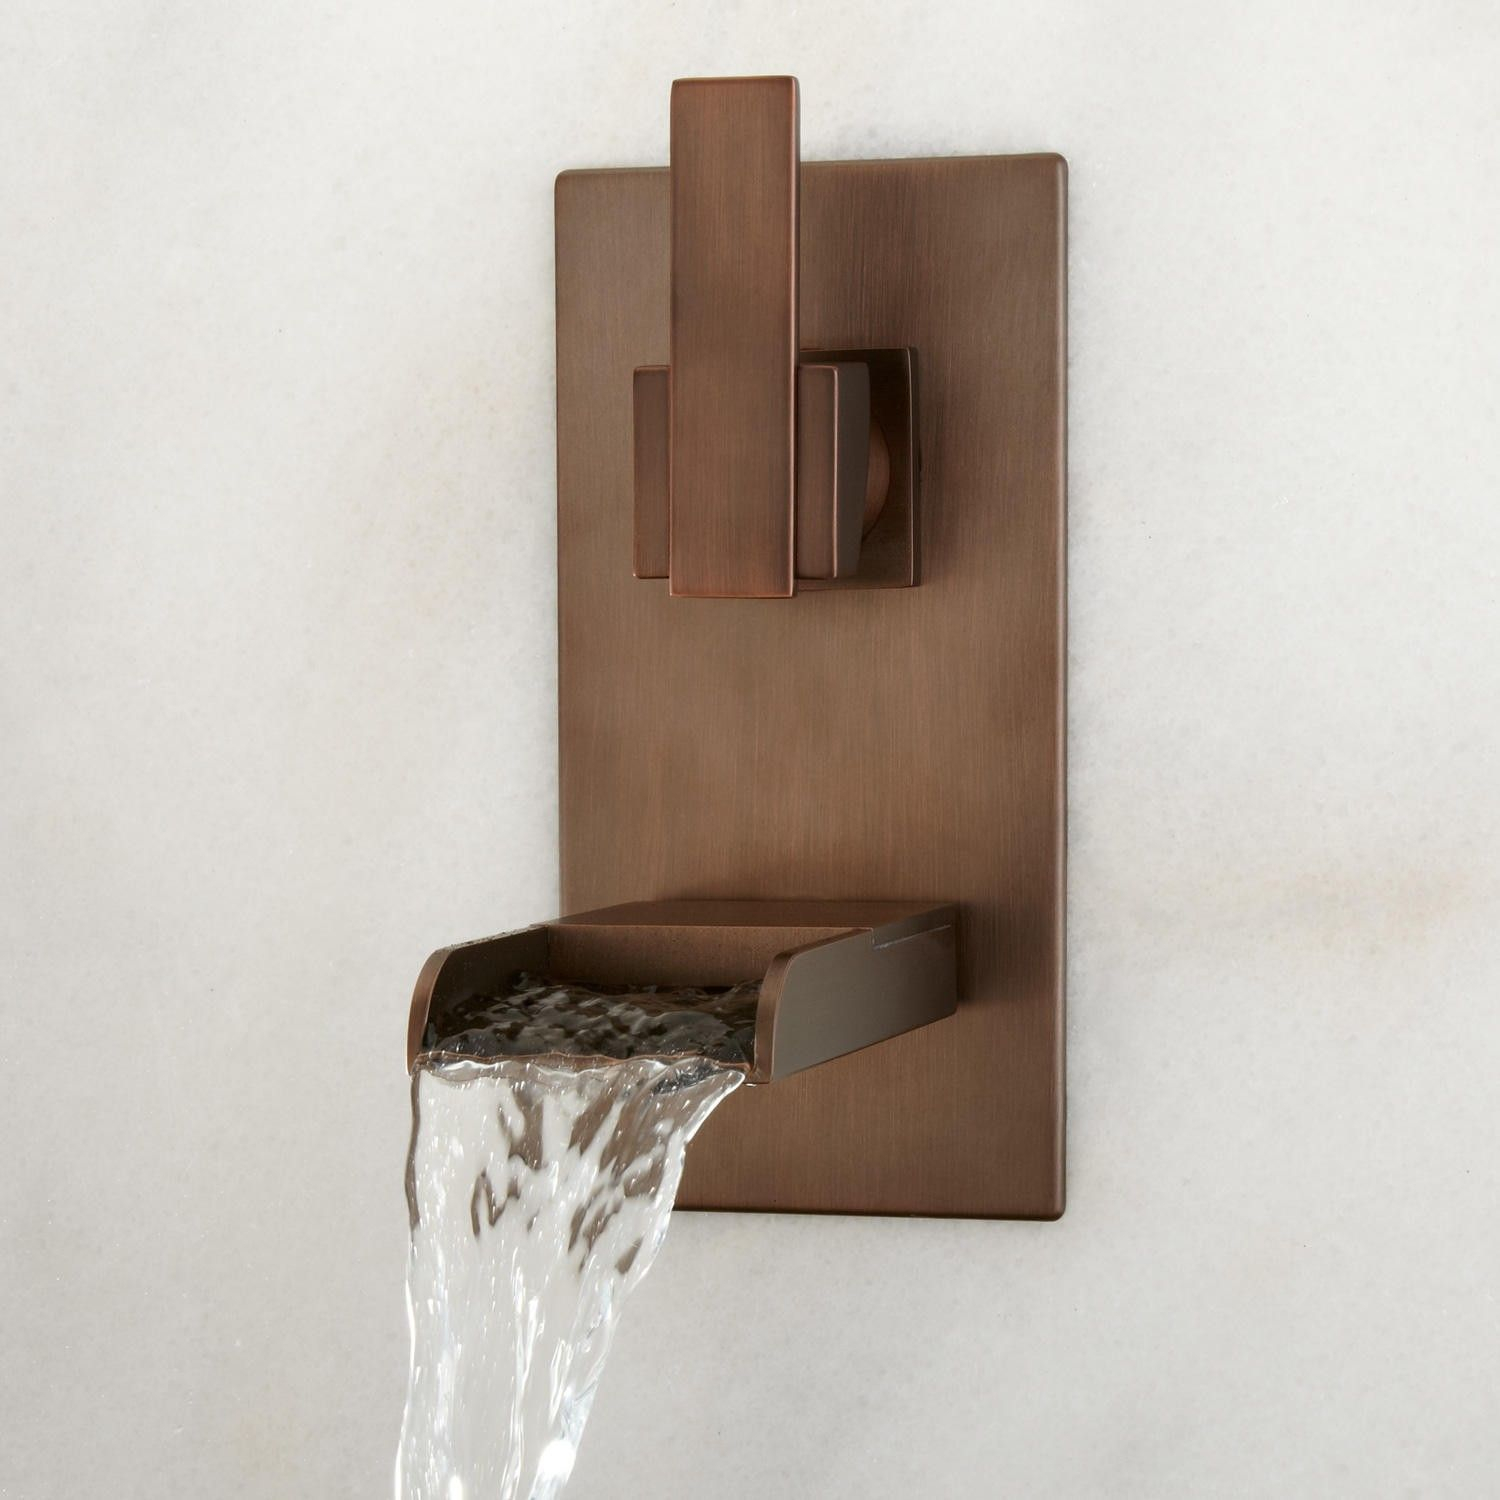 Willis Wall Mount Bathroom Waterfall Faucet House Ideas Wall regarding size 1500 X 1500